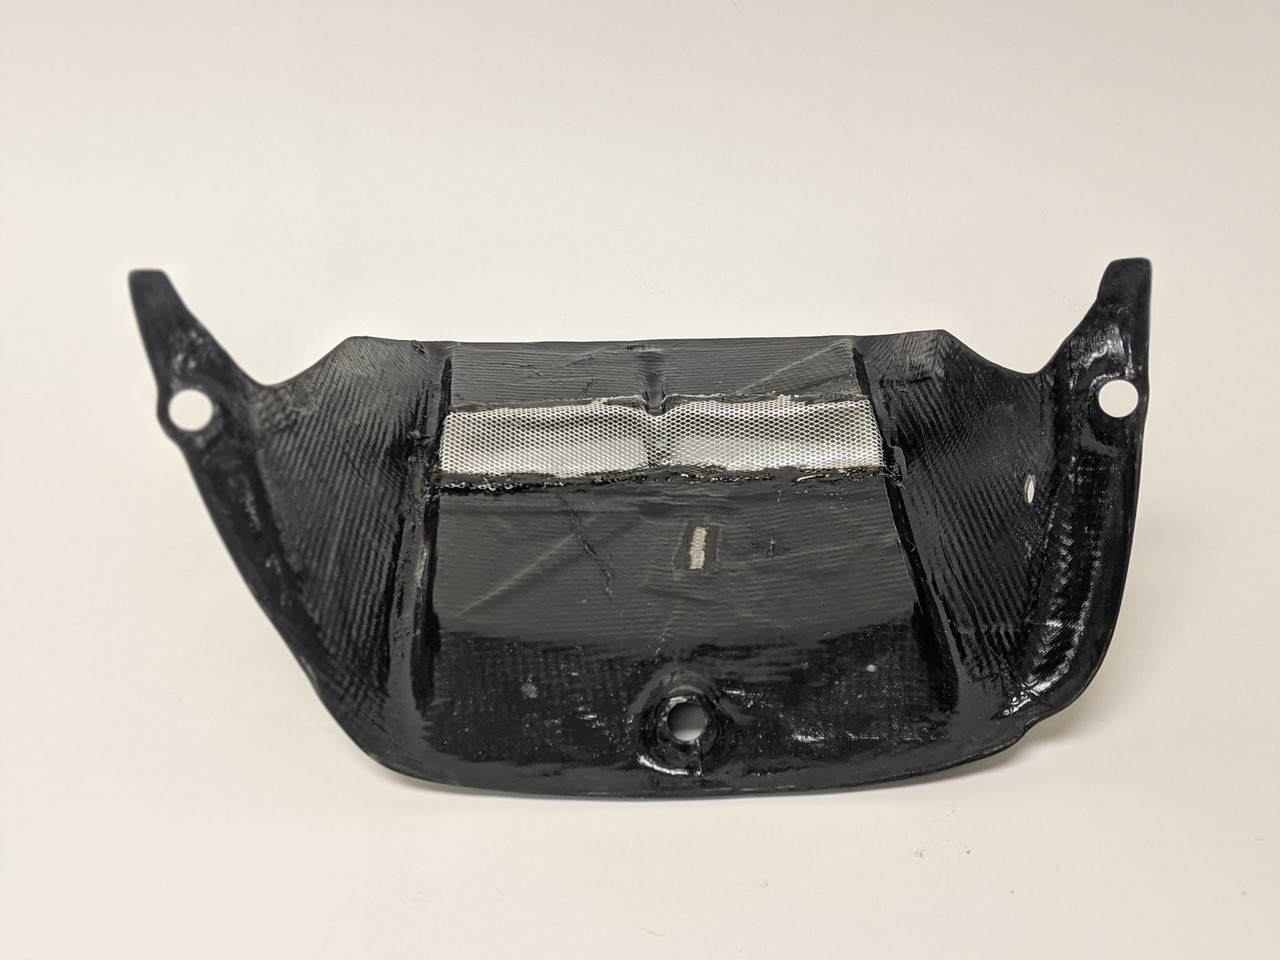 Rear Hugger in Carbon with Fiberglass for Yamaha R6 2006+